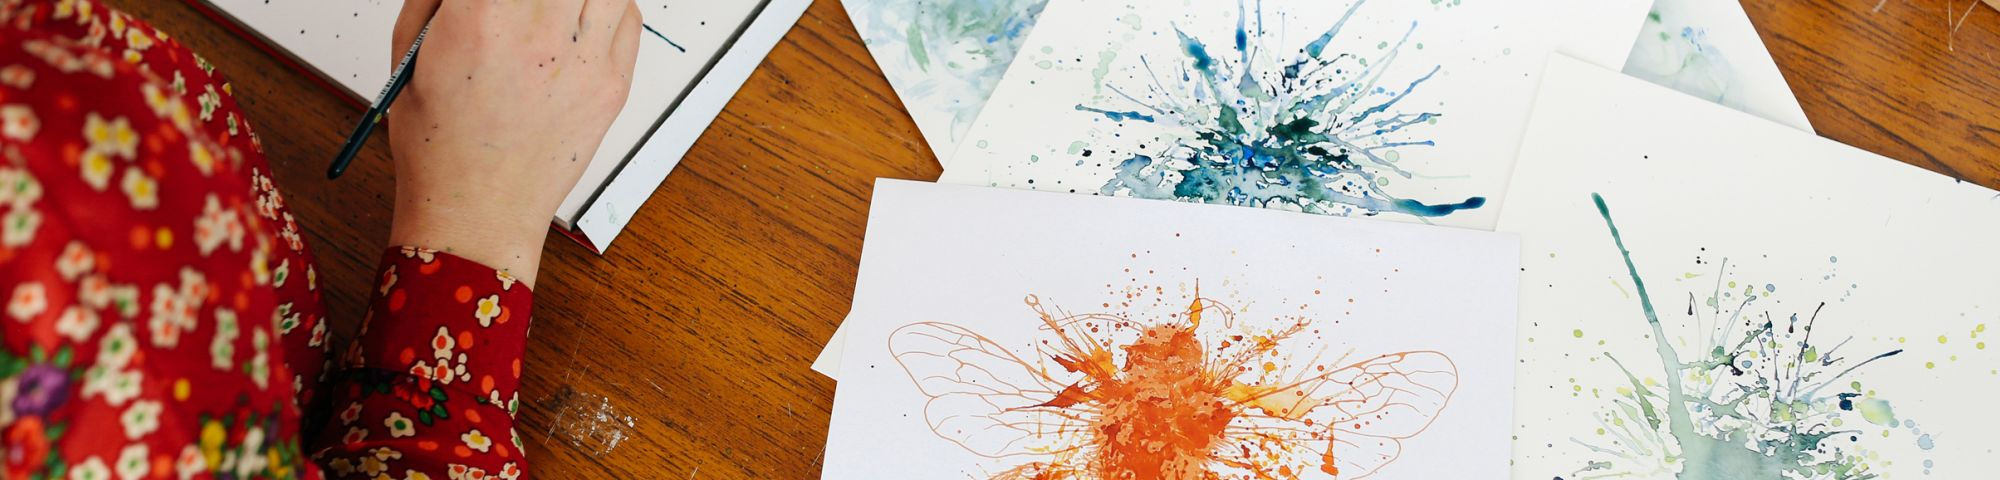 Hand with a paintbrush in and pieces of paper with blue and orange paintings on